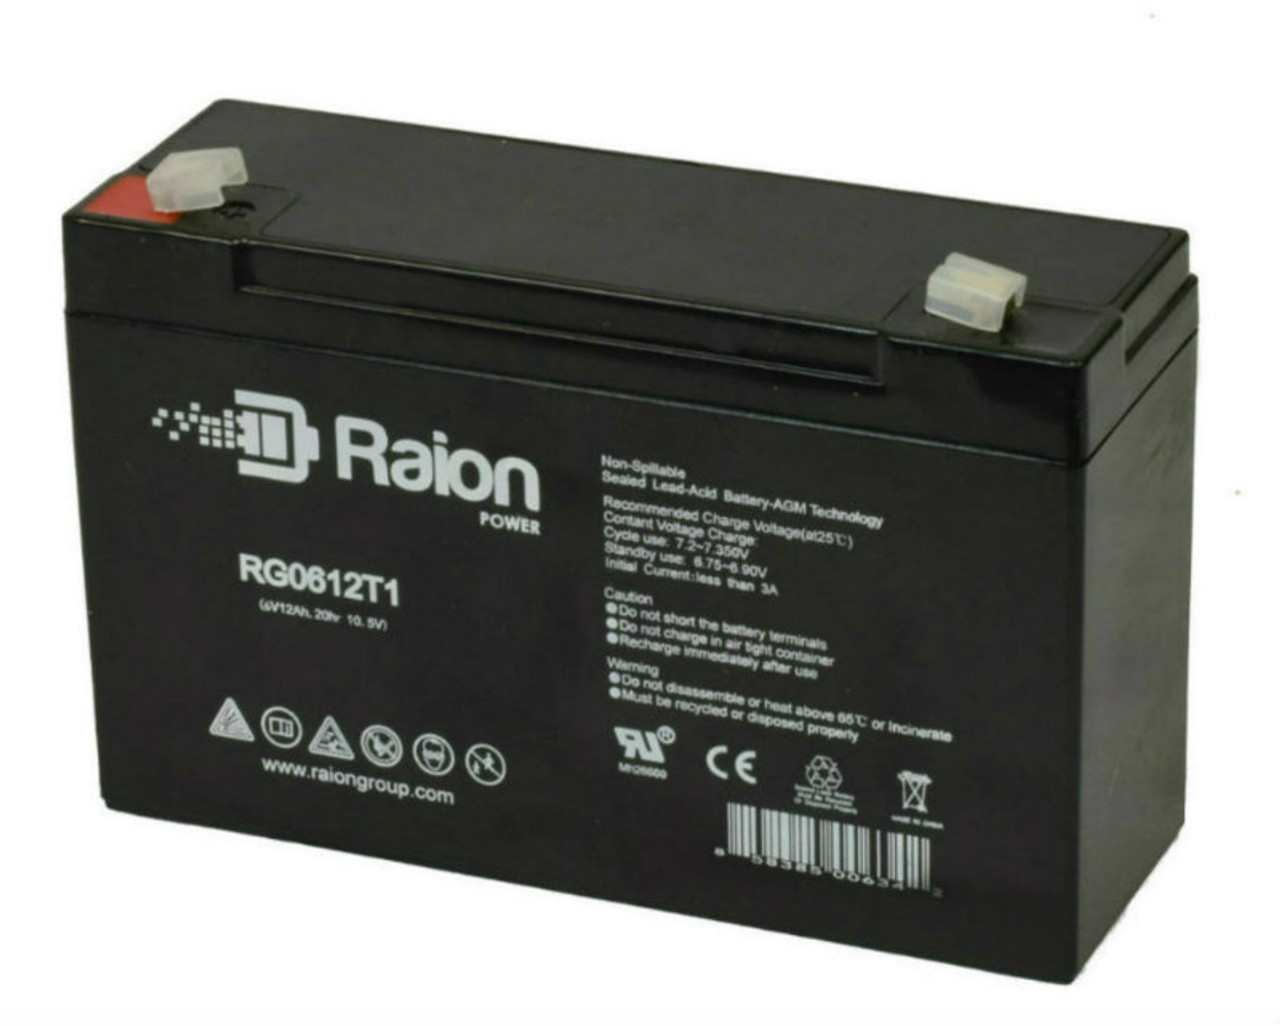 Raion Power RG06120T1 Replacement Battery Pack for Dynaray S18174 emergency light